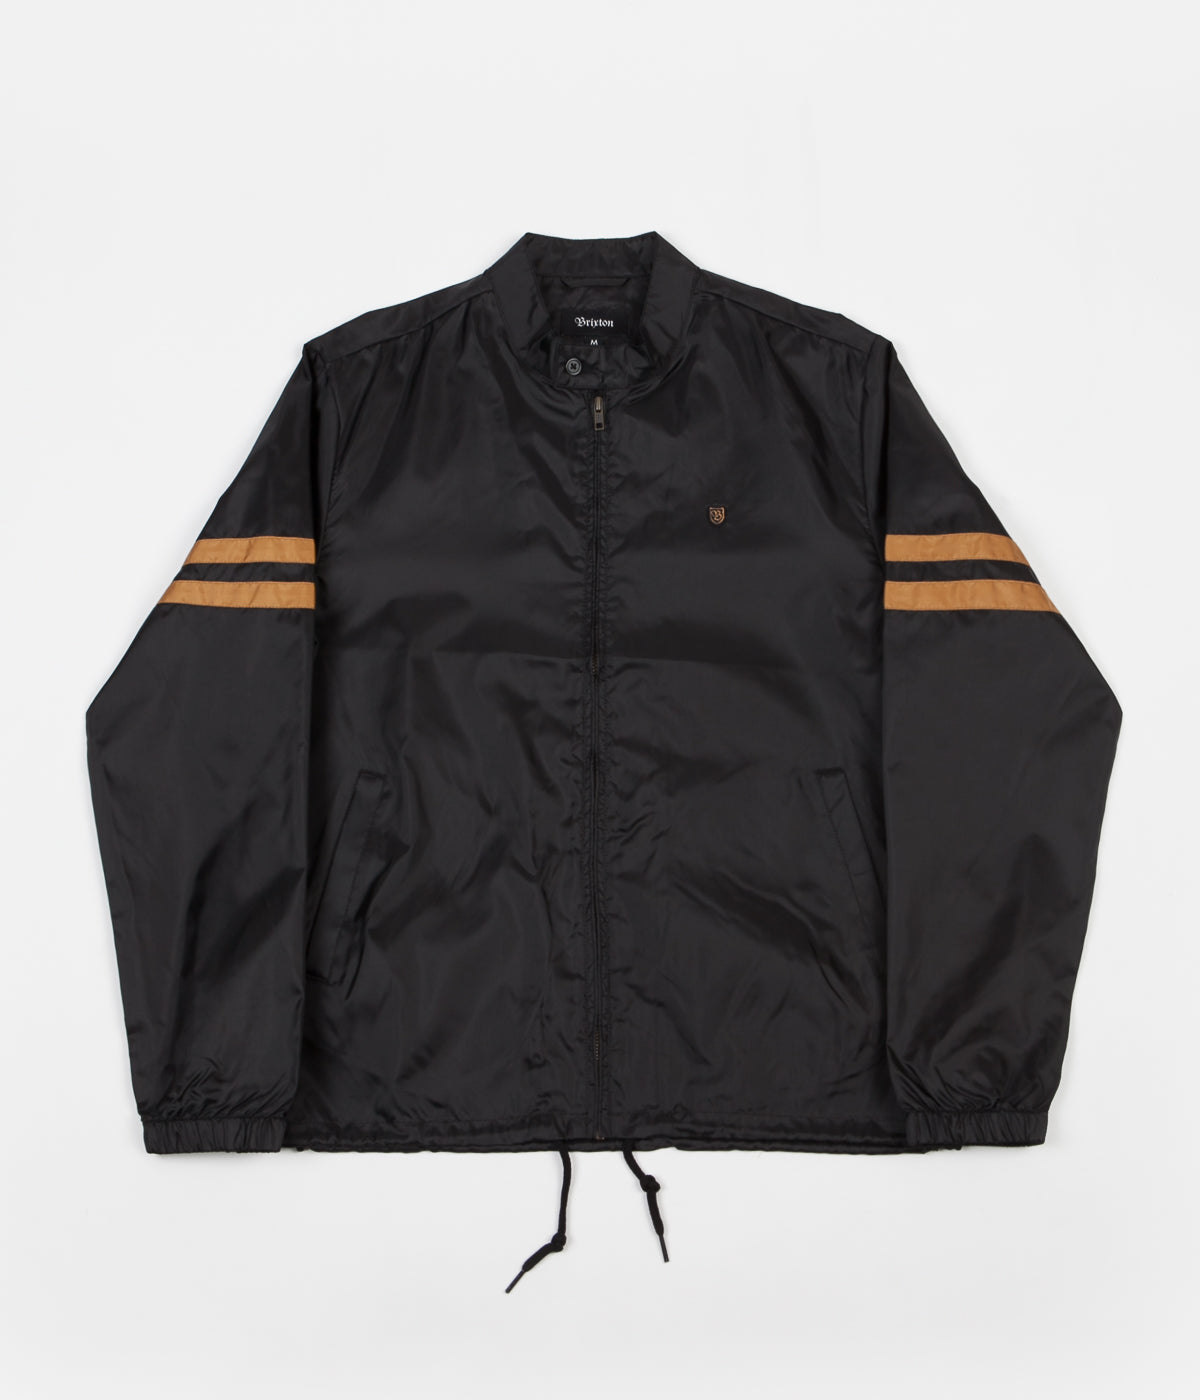 Brixton Plex Jacket - Black / Bronze